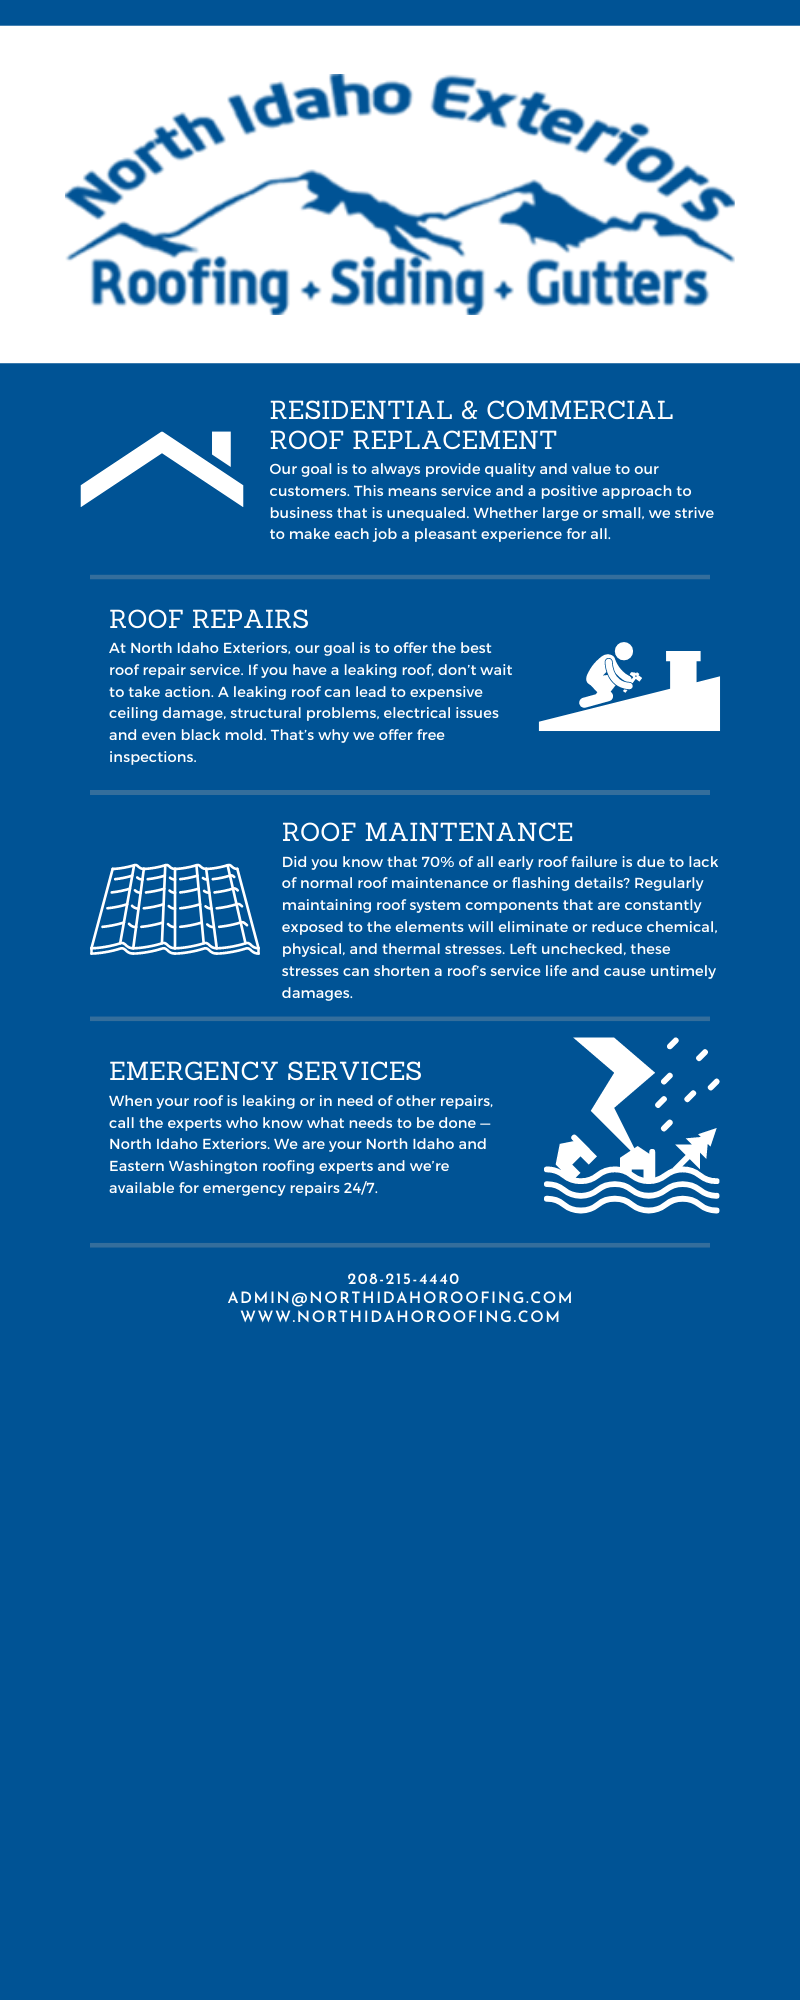 Roofing Experts Who Care About Your Investment. 3